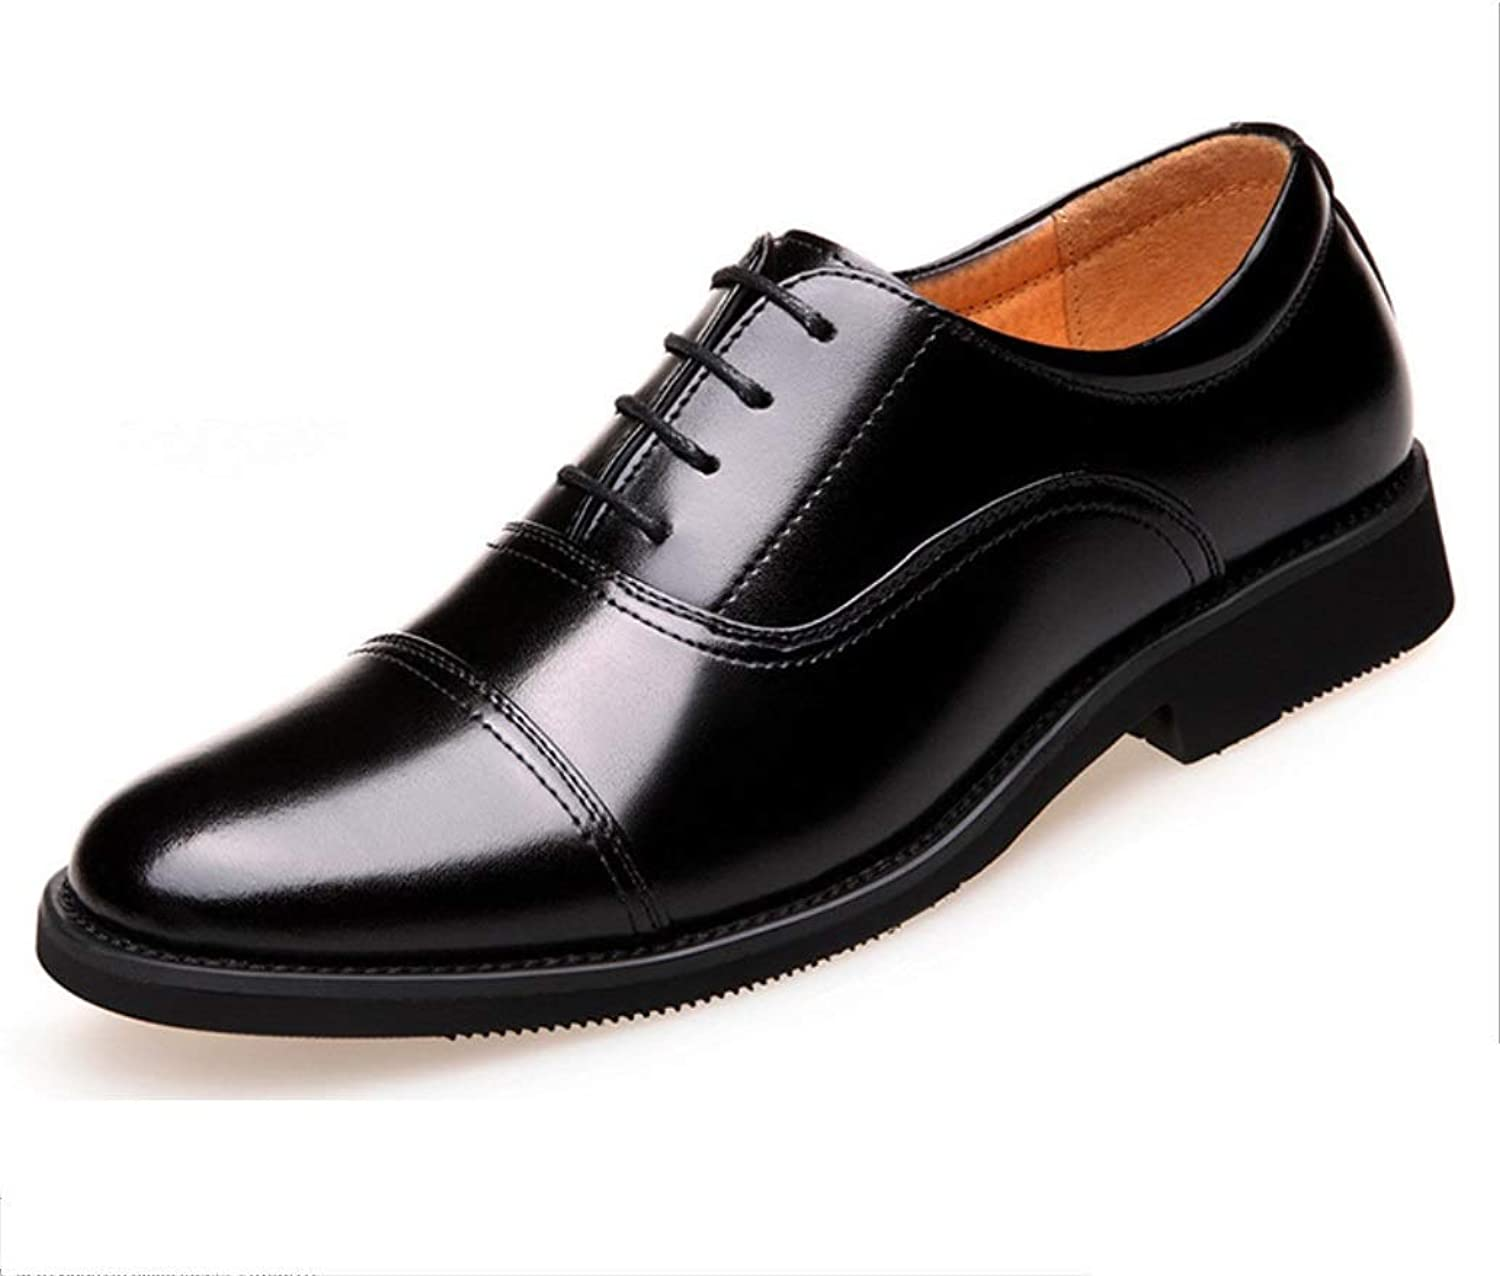 MON5F HOME Dress shoes Classic Sergeant Dress shoes Business Pointed Officer Leather shoes Military Labor Insurance Business Men's shoes (color   Black, Size   44)